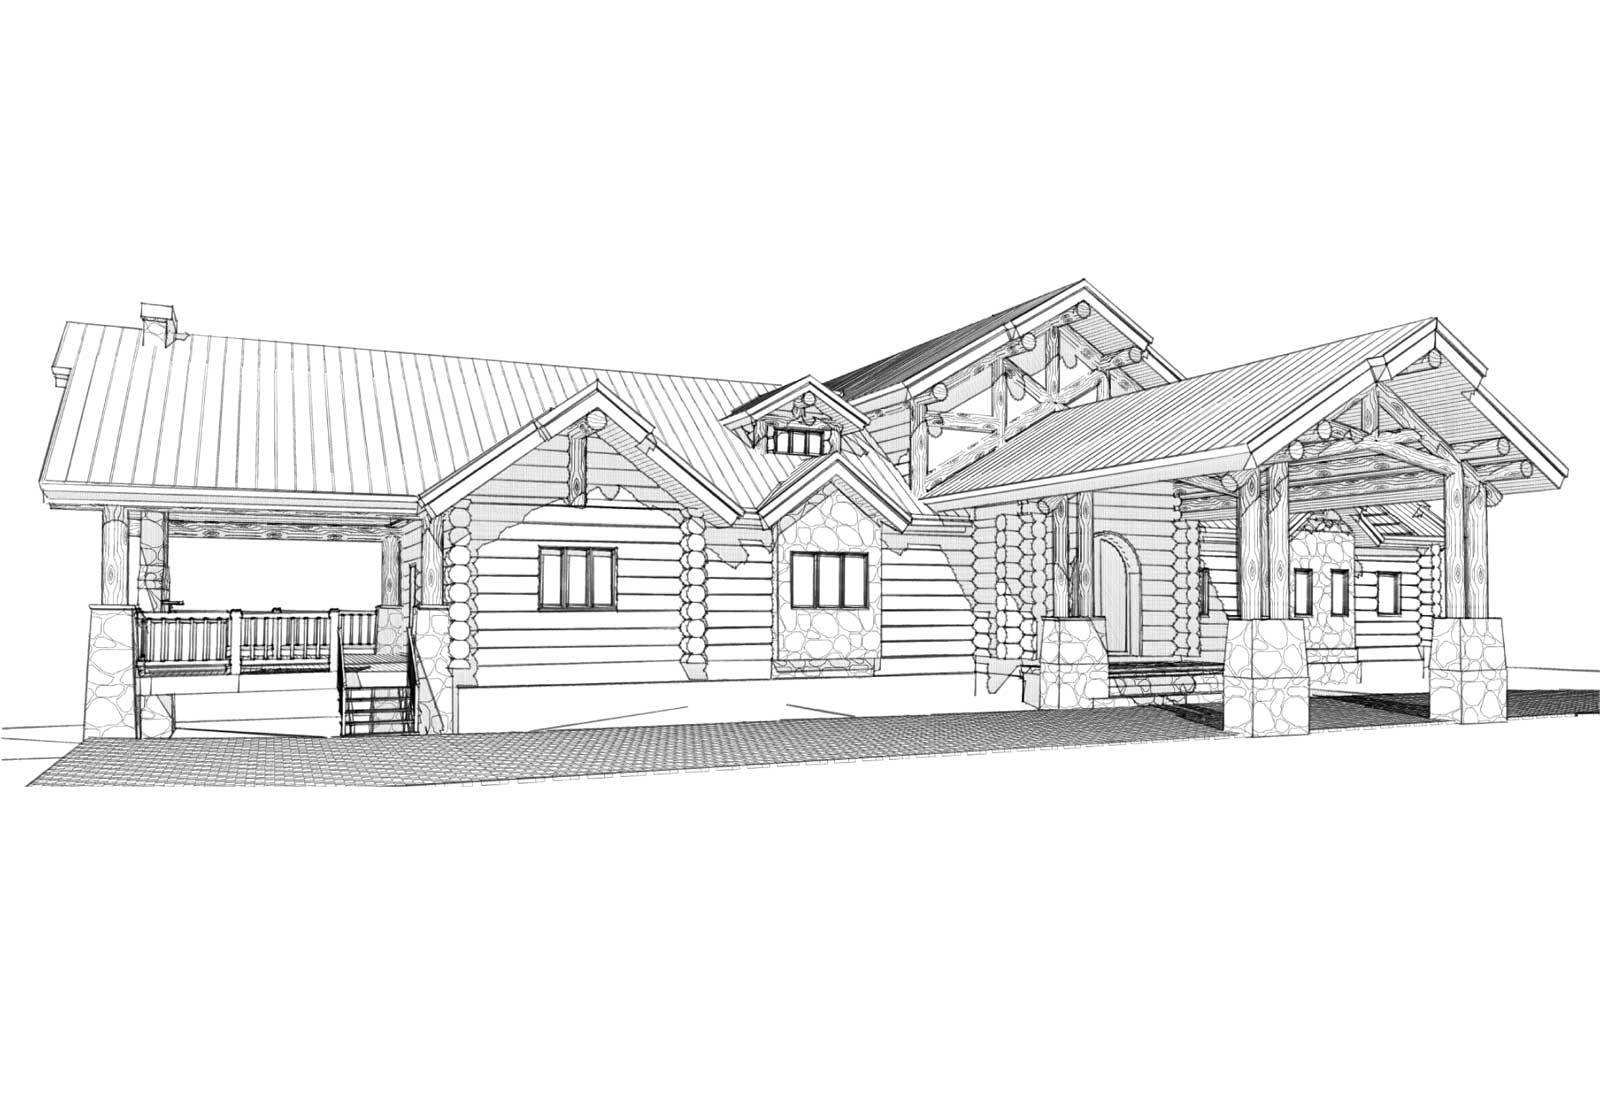 Telluride custom designed log home front left view